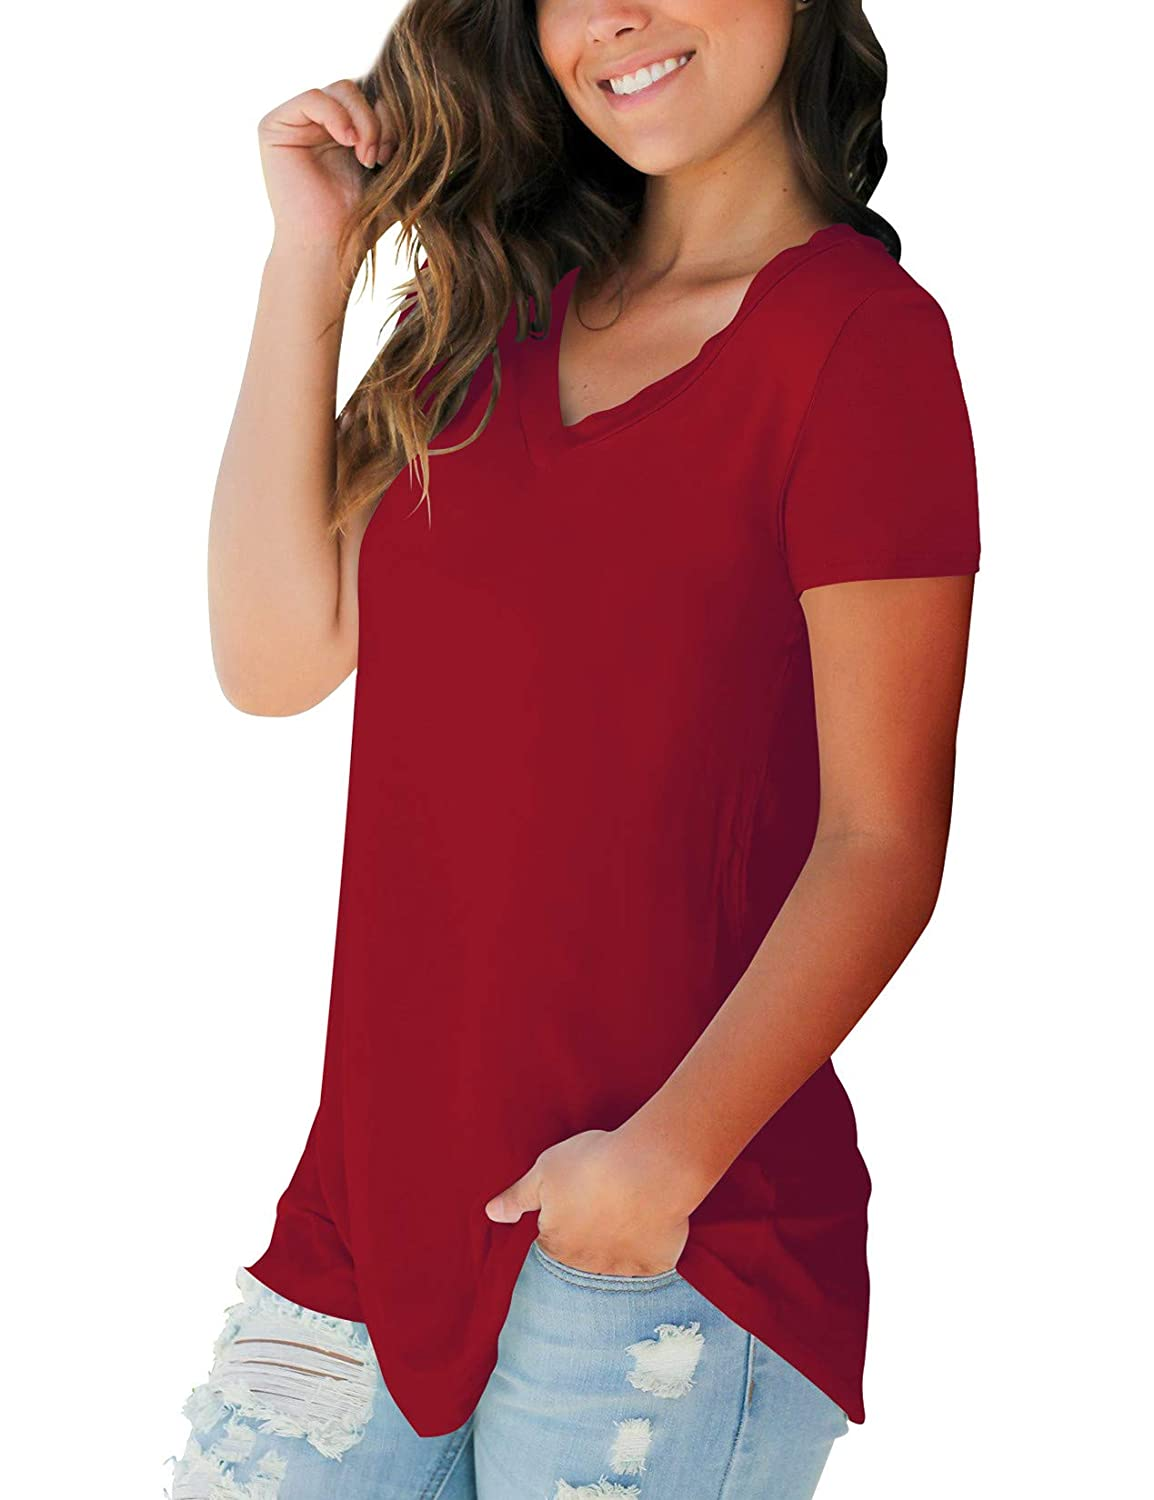 SMALOVY Womens Tops Short Sleeve V Neck T Shirts Summer Basic Tees with Pocket